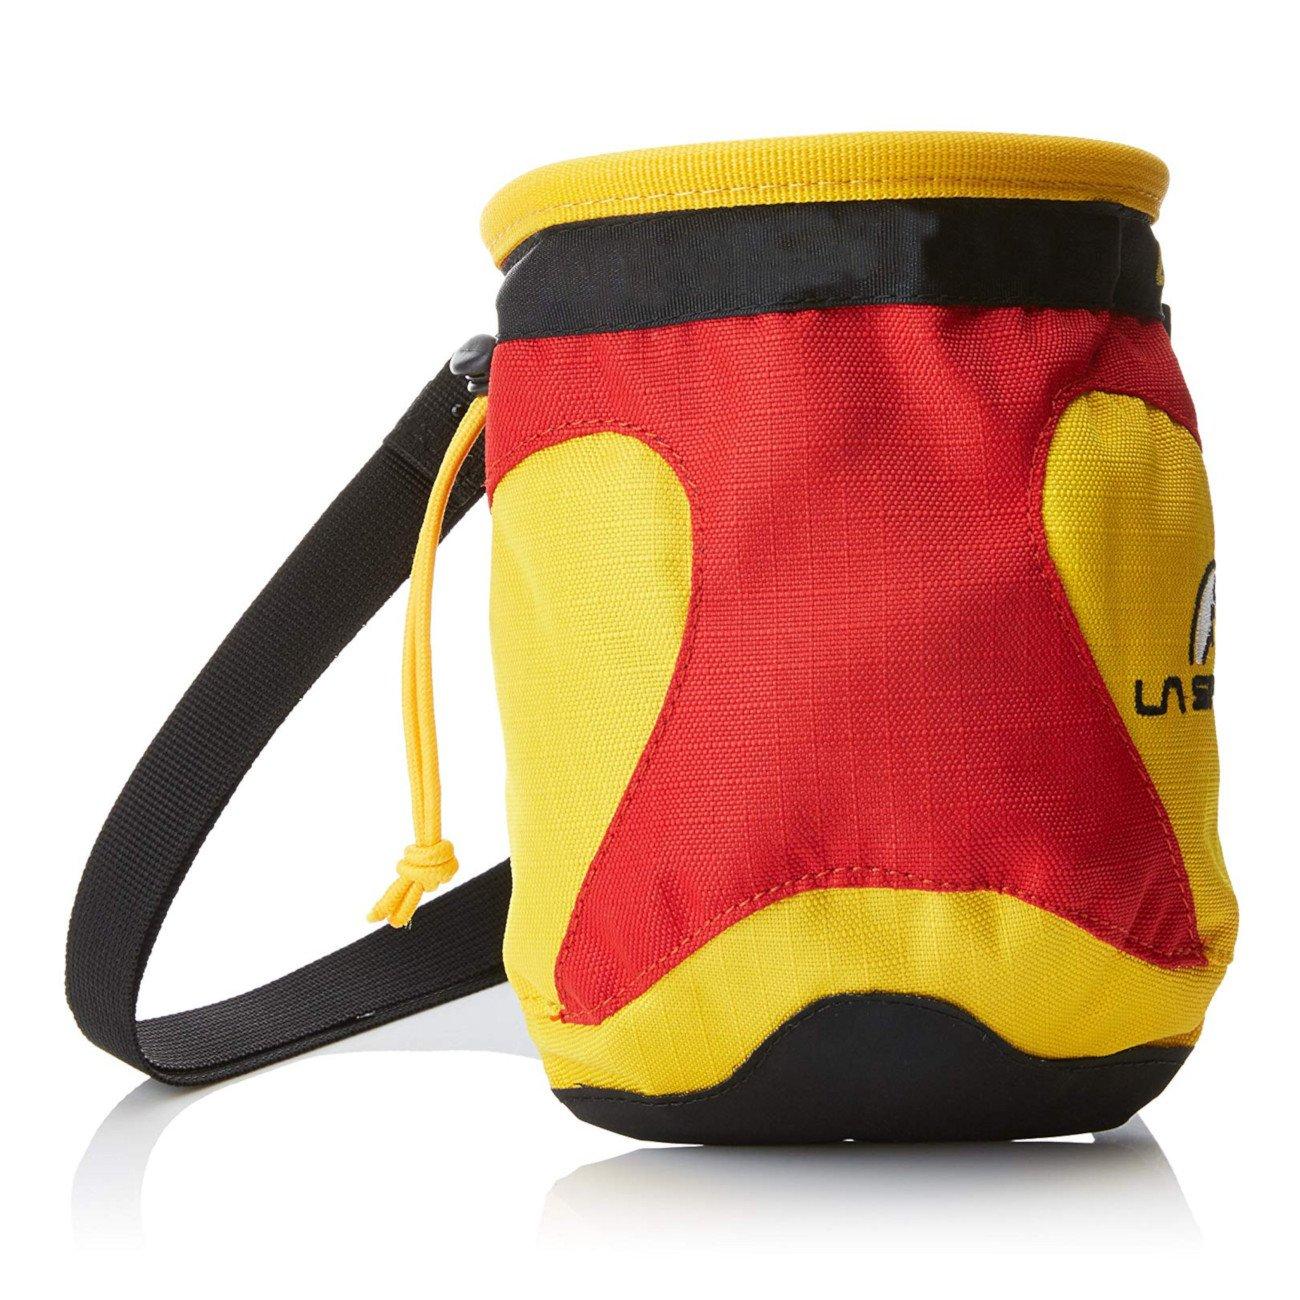 La Sportiva Testarossa Chalk Bag, front view in red/yellow and black colours